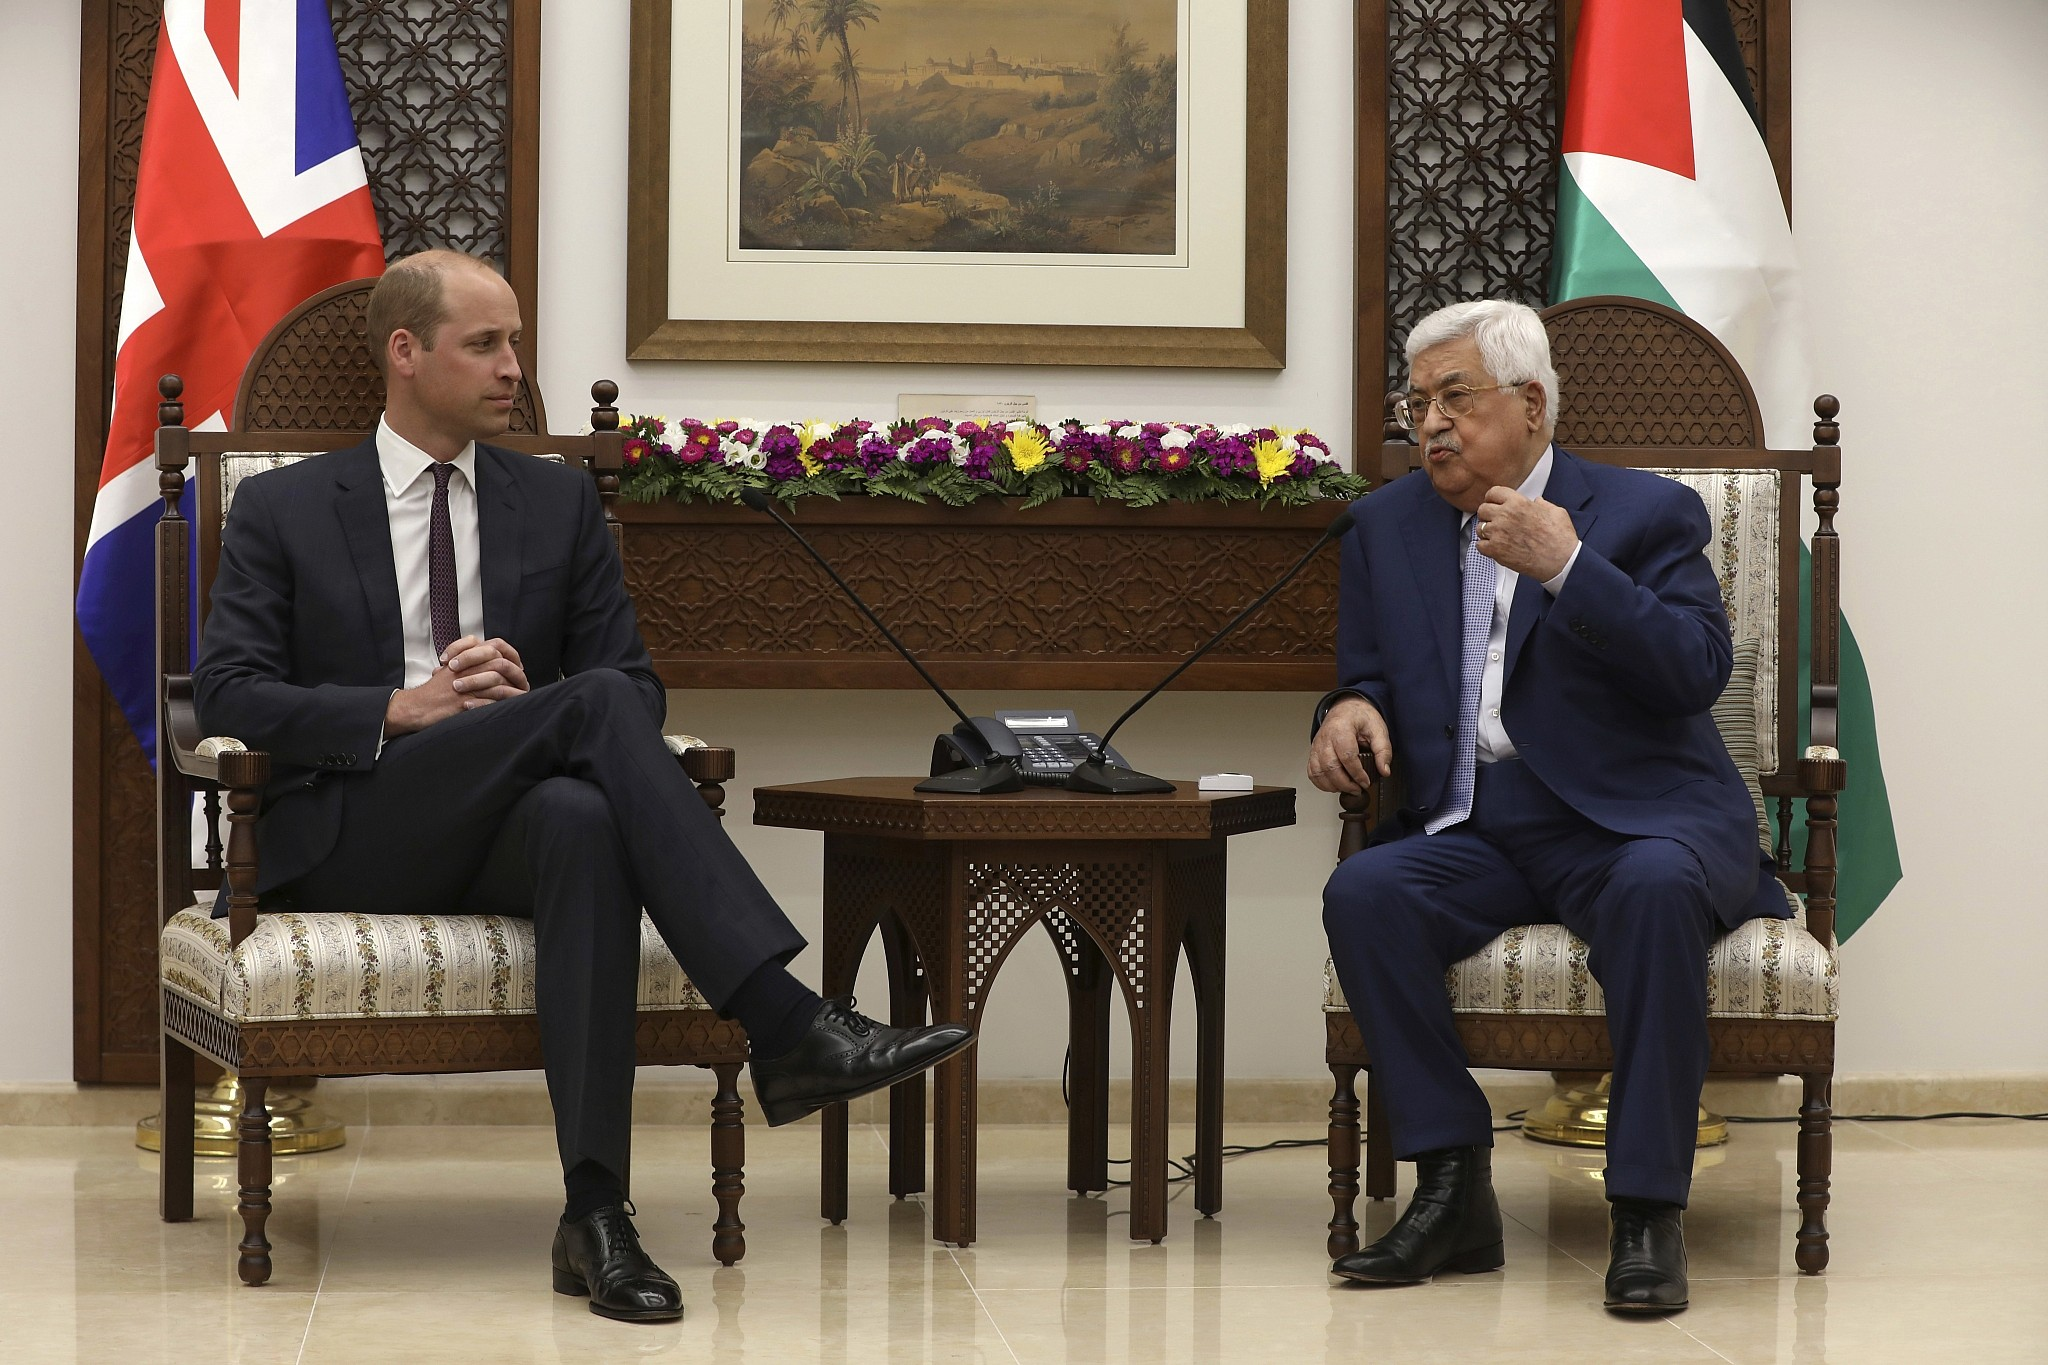 Abbas tells Prince William Palestinians want peace